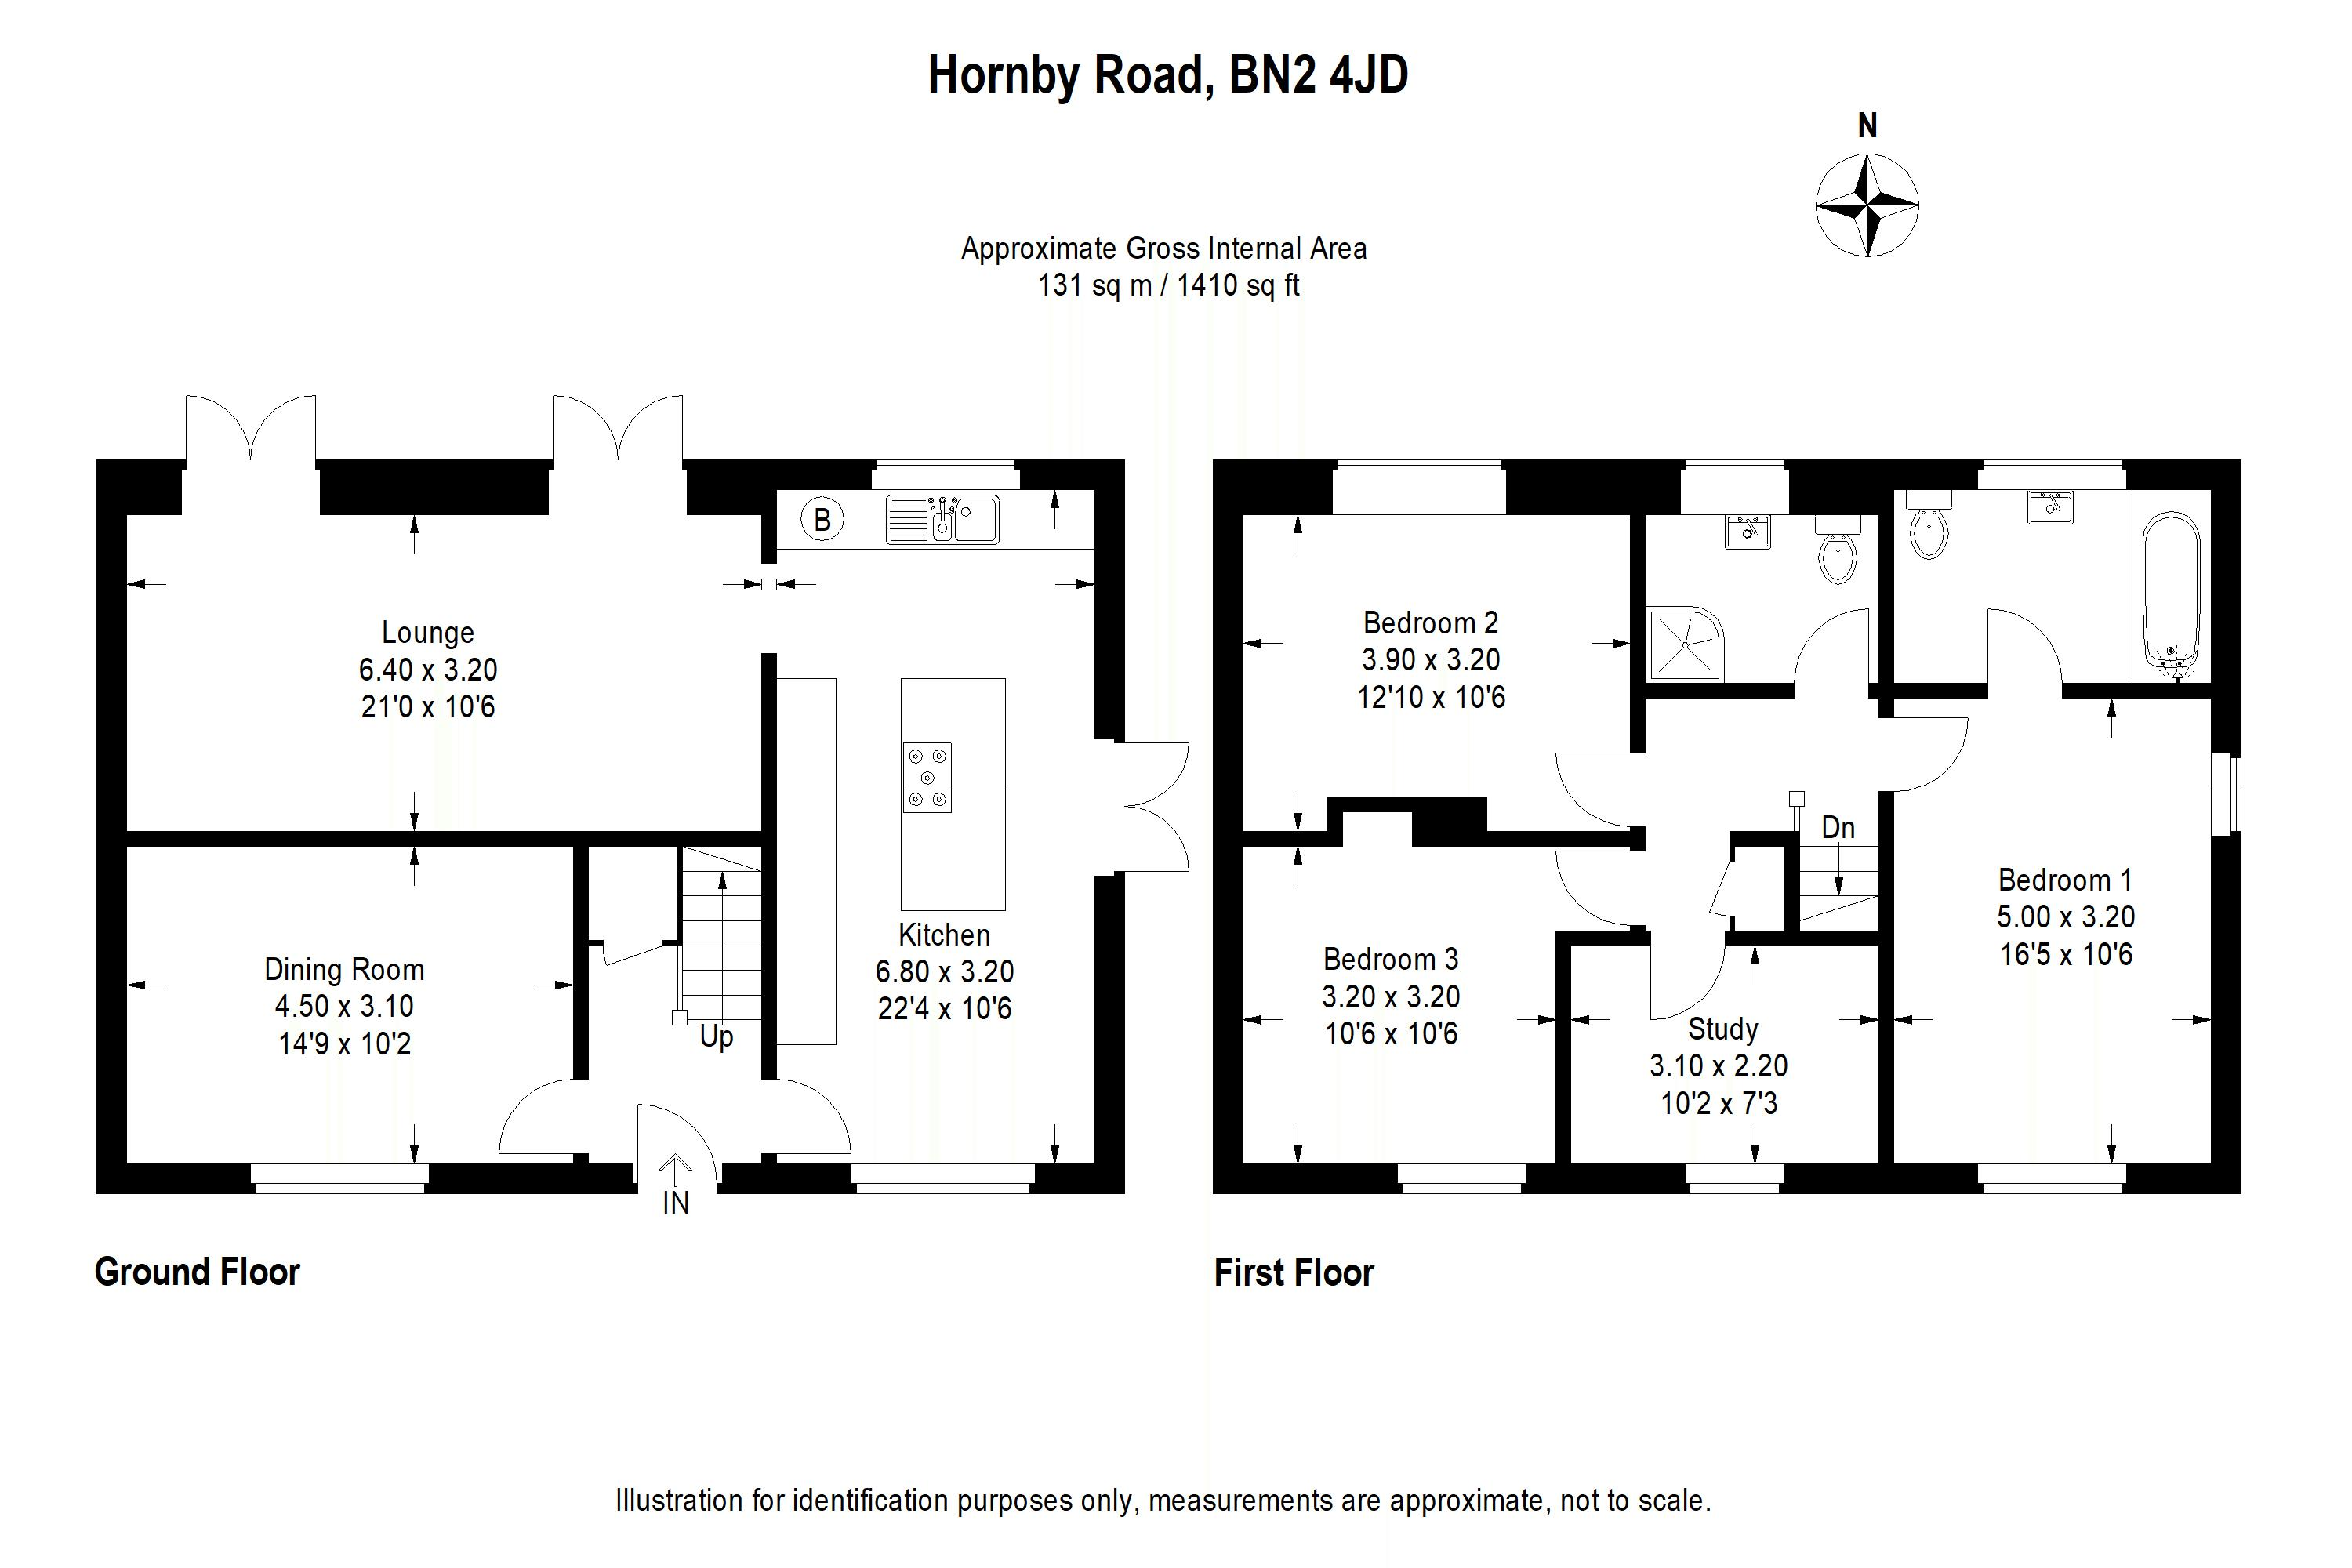 Floor plans for Hornby Road, Brighton property for sale in Bevendean, Brighton by Coapt